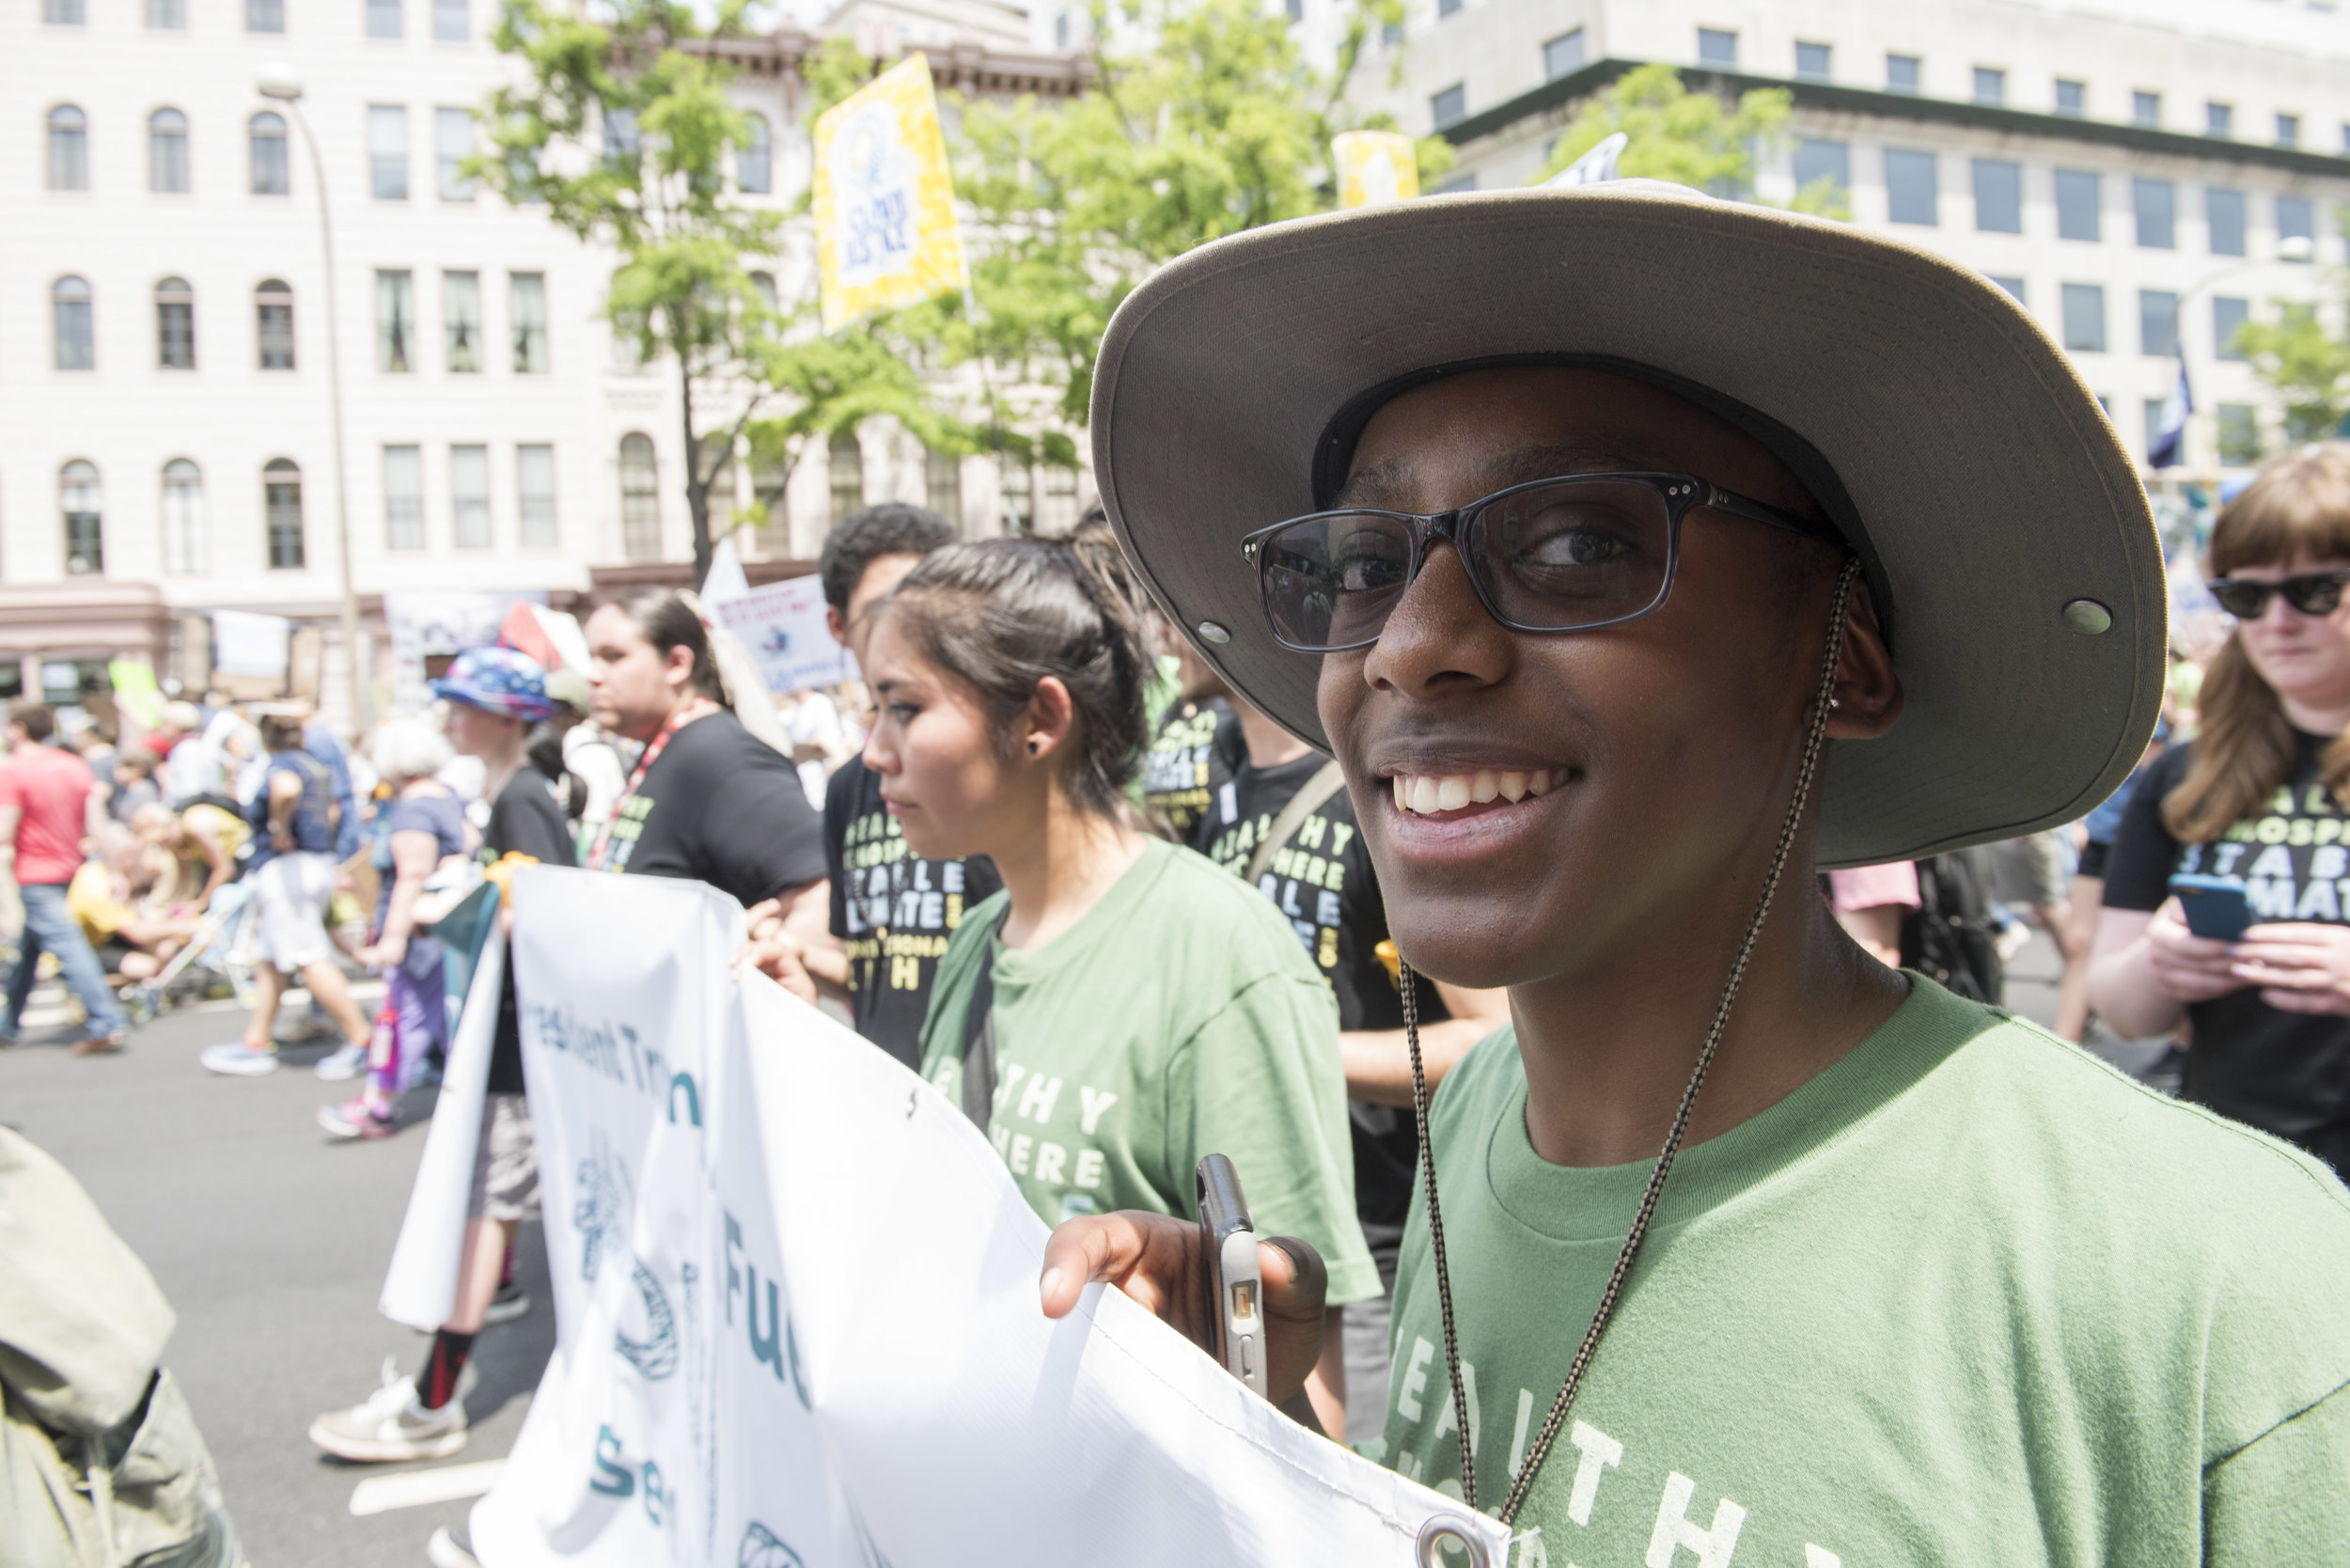 Isaac at the April 29, 2017 People's Climate March. Photo: Robin Loznak